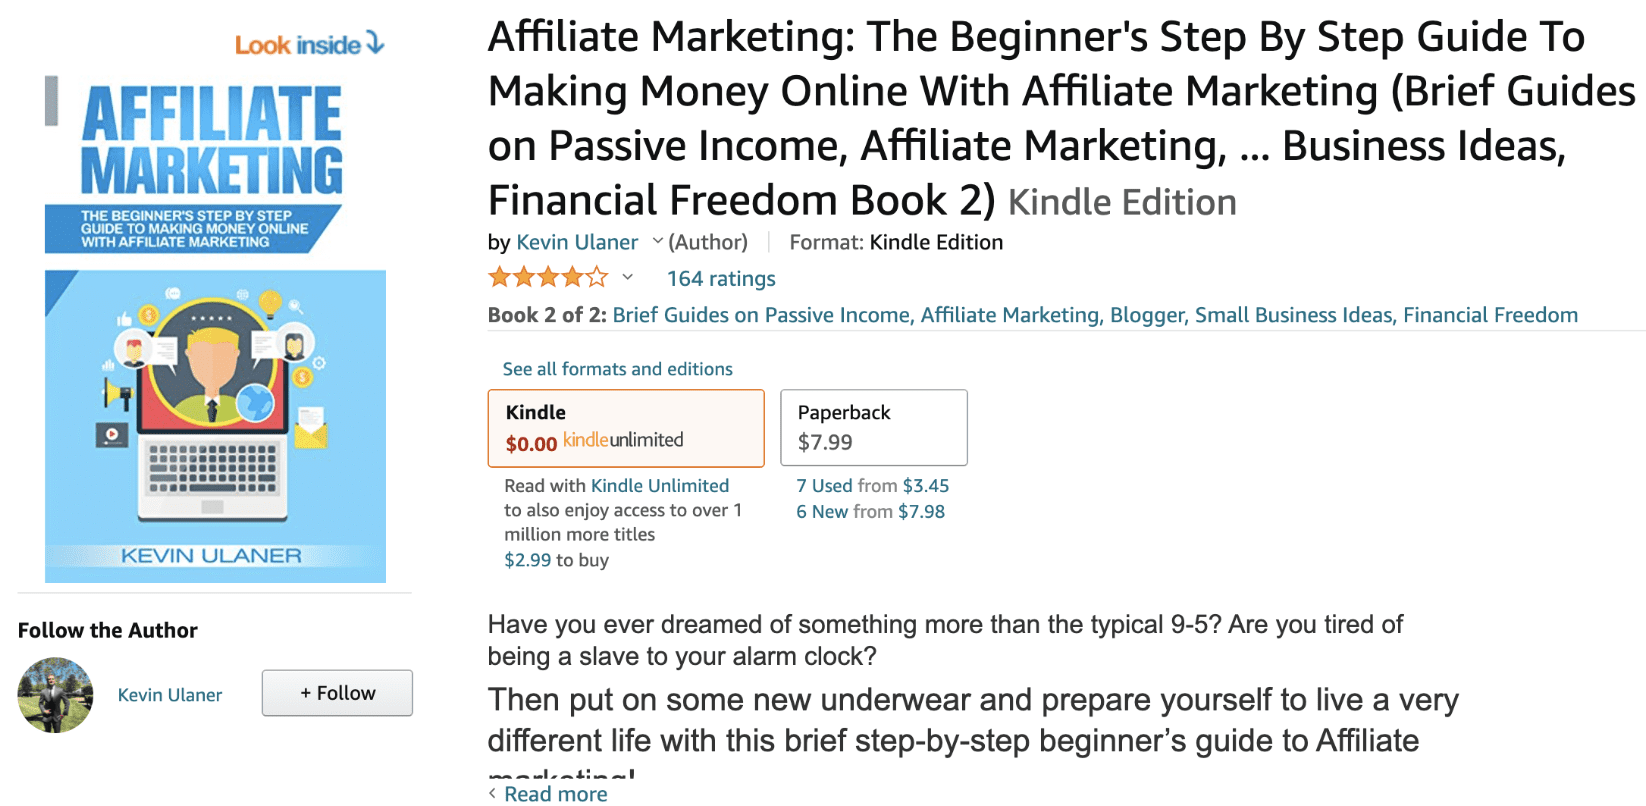 Affiliate Marketing by Kevin Ulaner